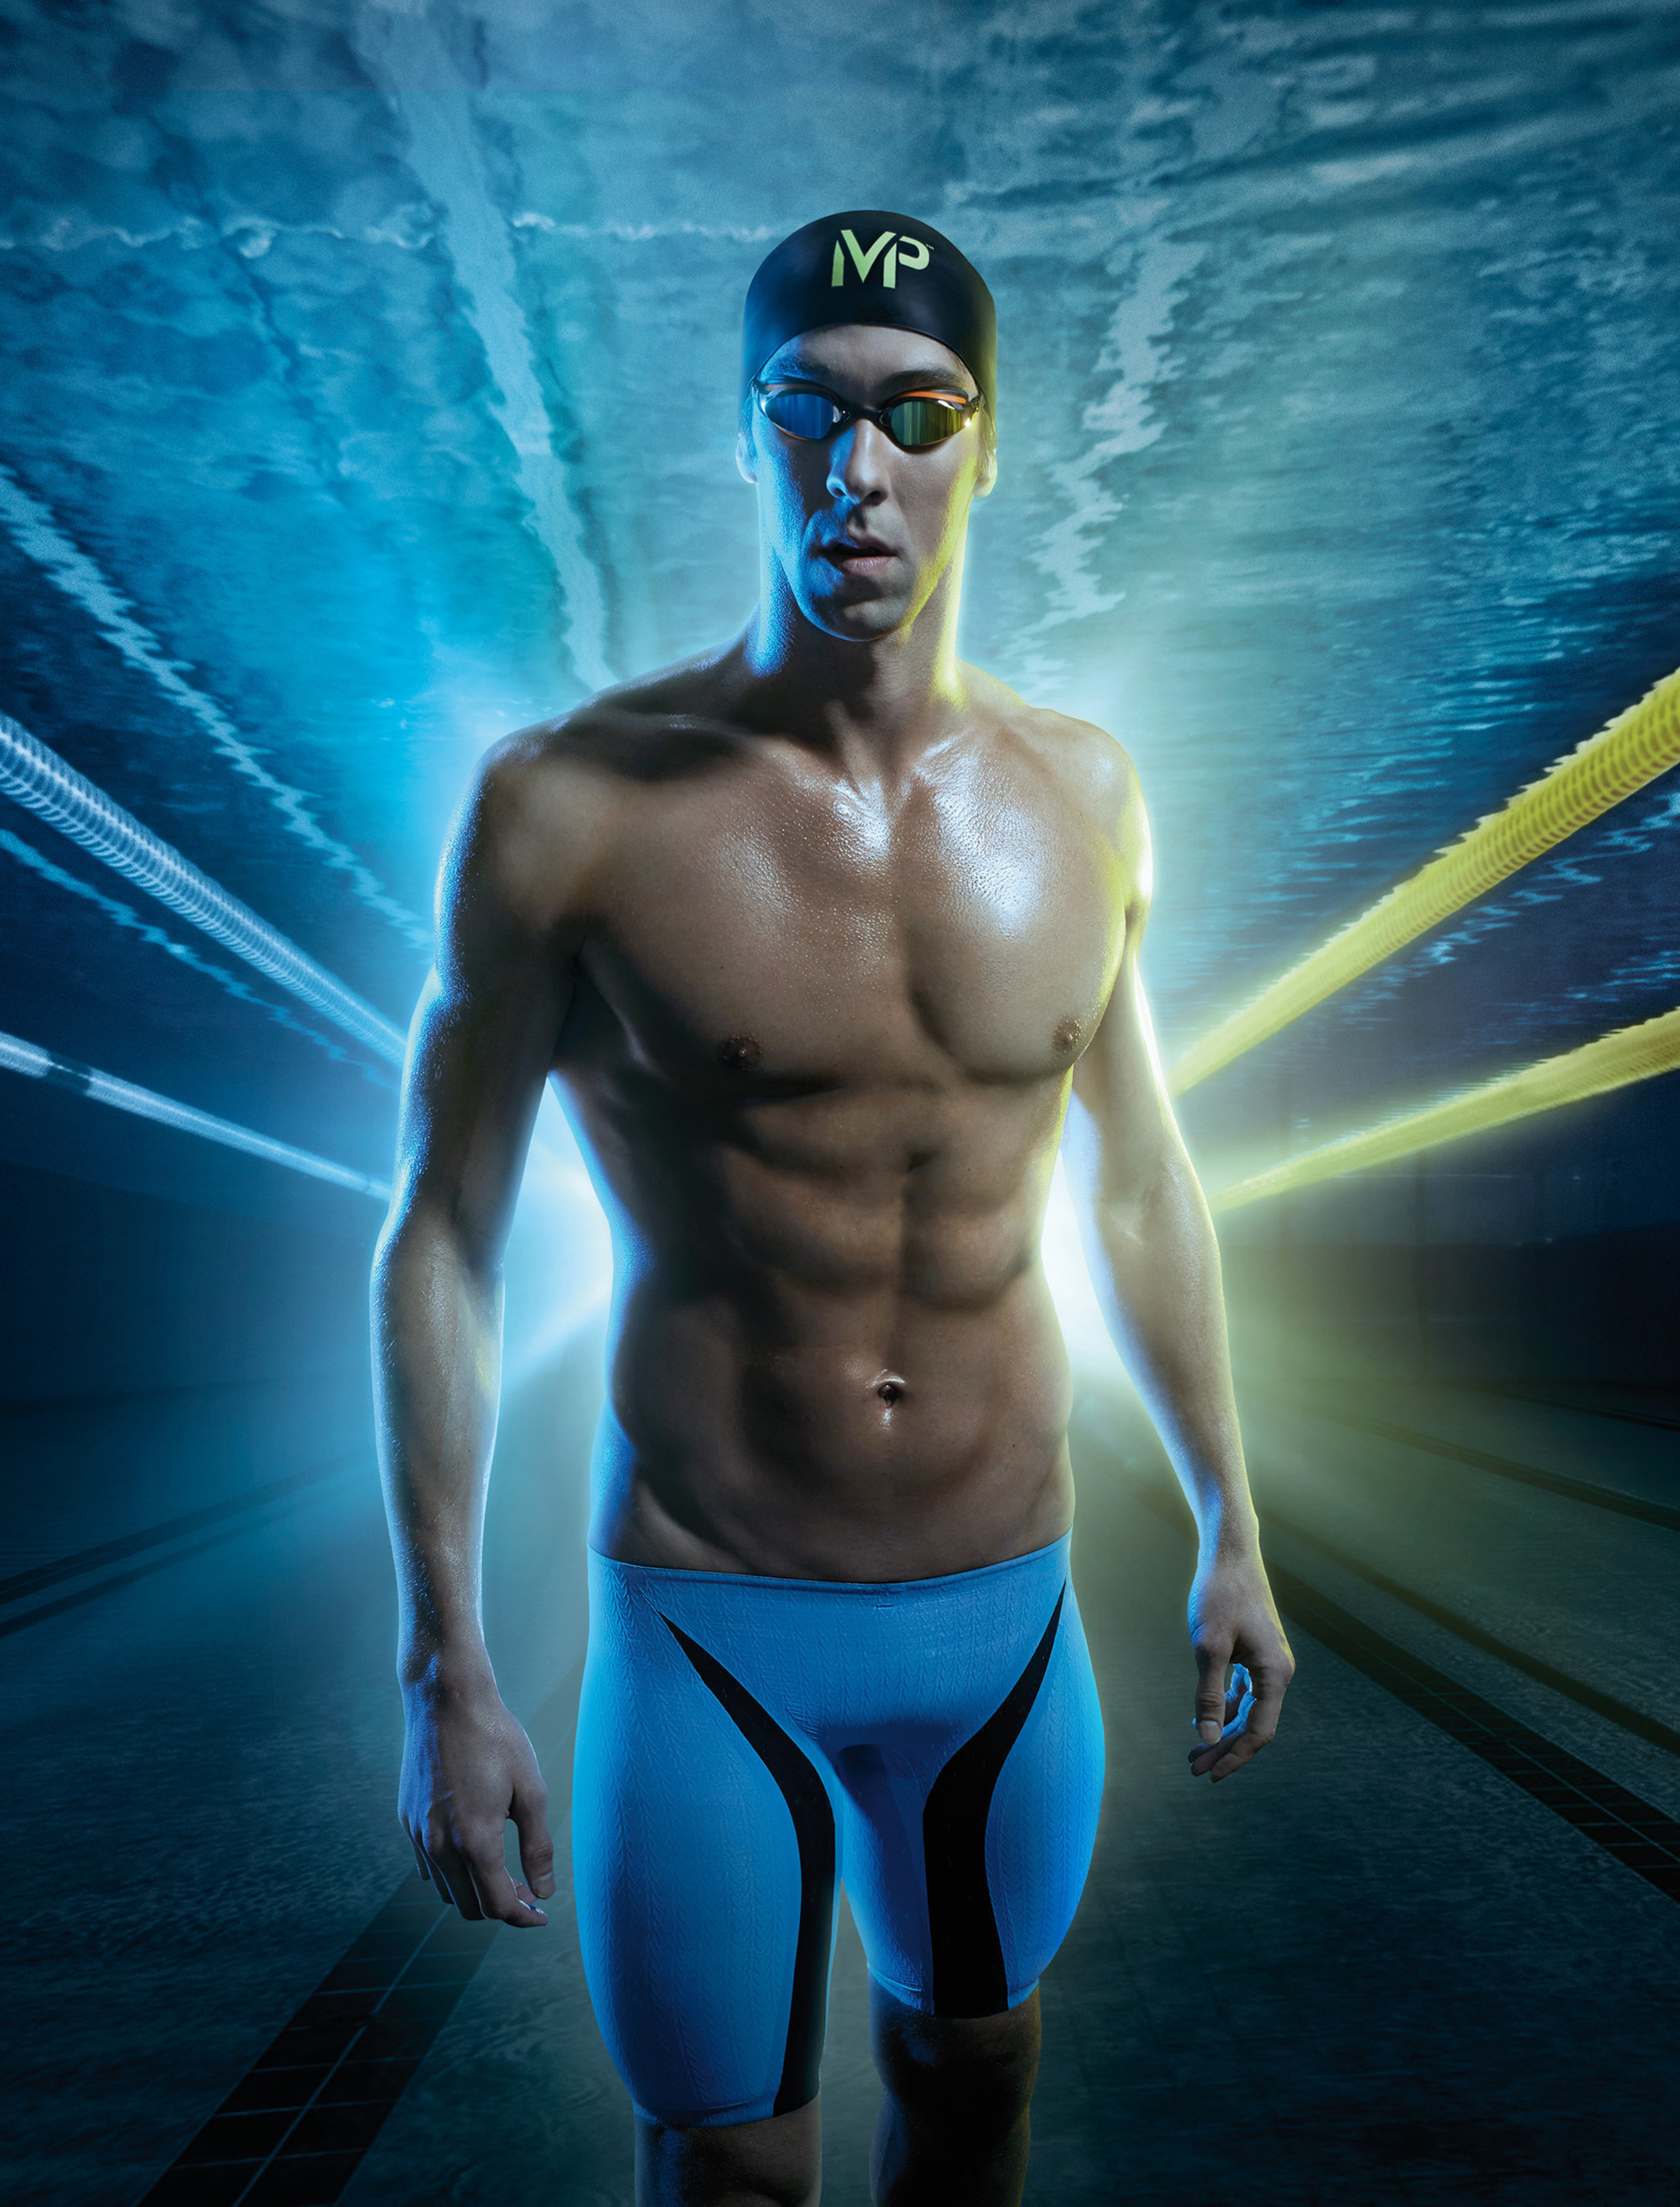 """Michael Phelps and Aqua Sphere launch """"MP"""" brand with release of collaboration's first competitive swim suit - XPRESSO. The 2015 MP product line features the XPRESSO racing suit, K180 and K180  performance goggles, and the Focus Swim Snorkel."""